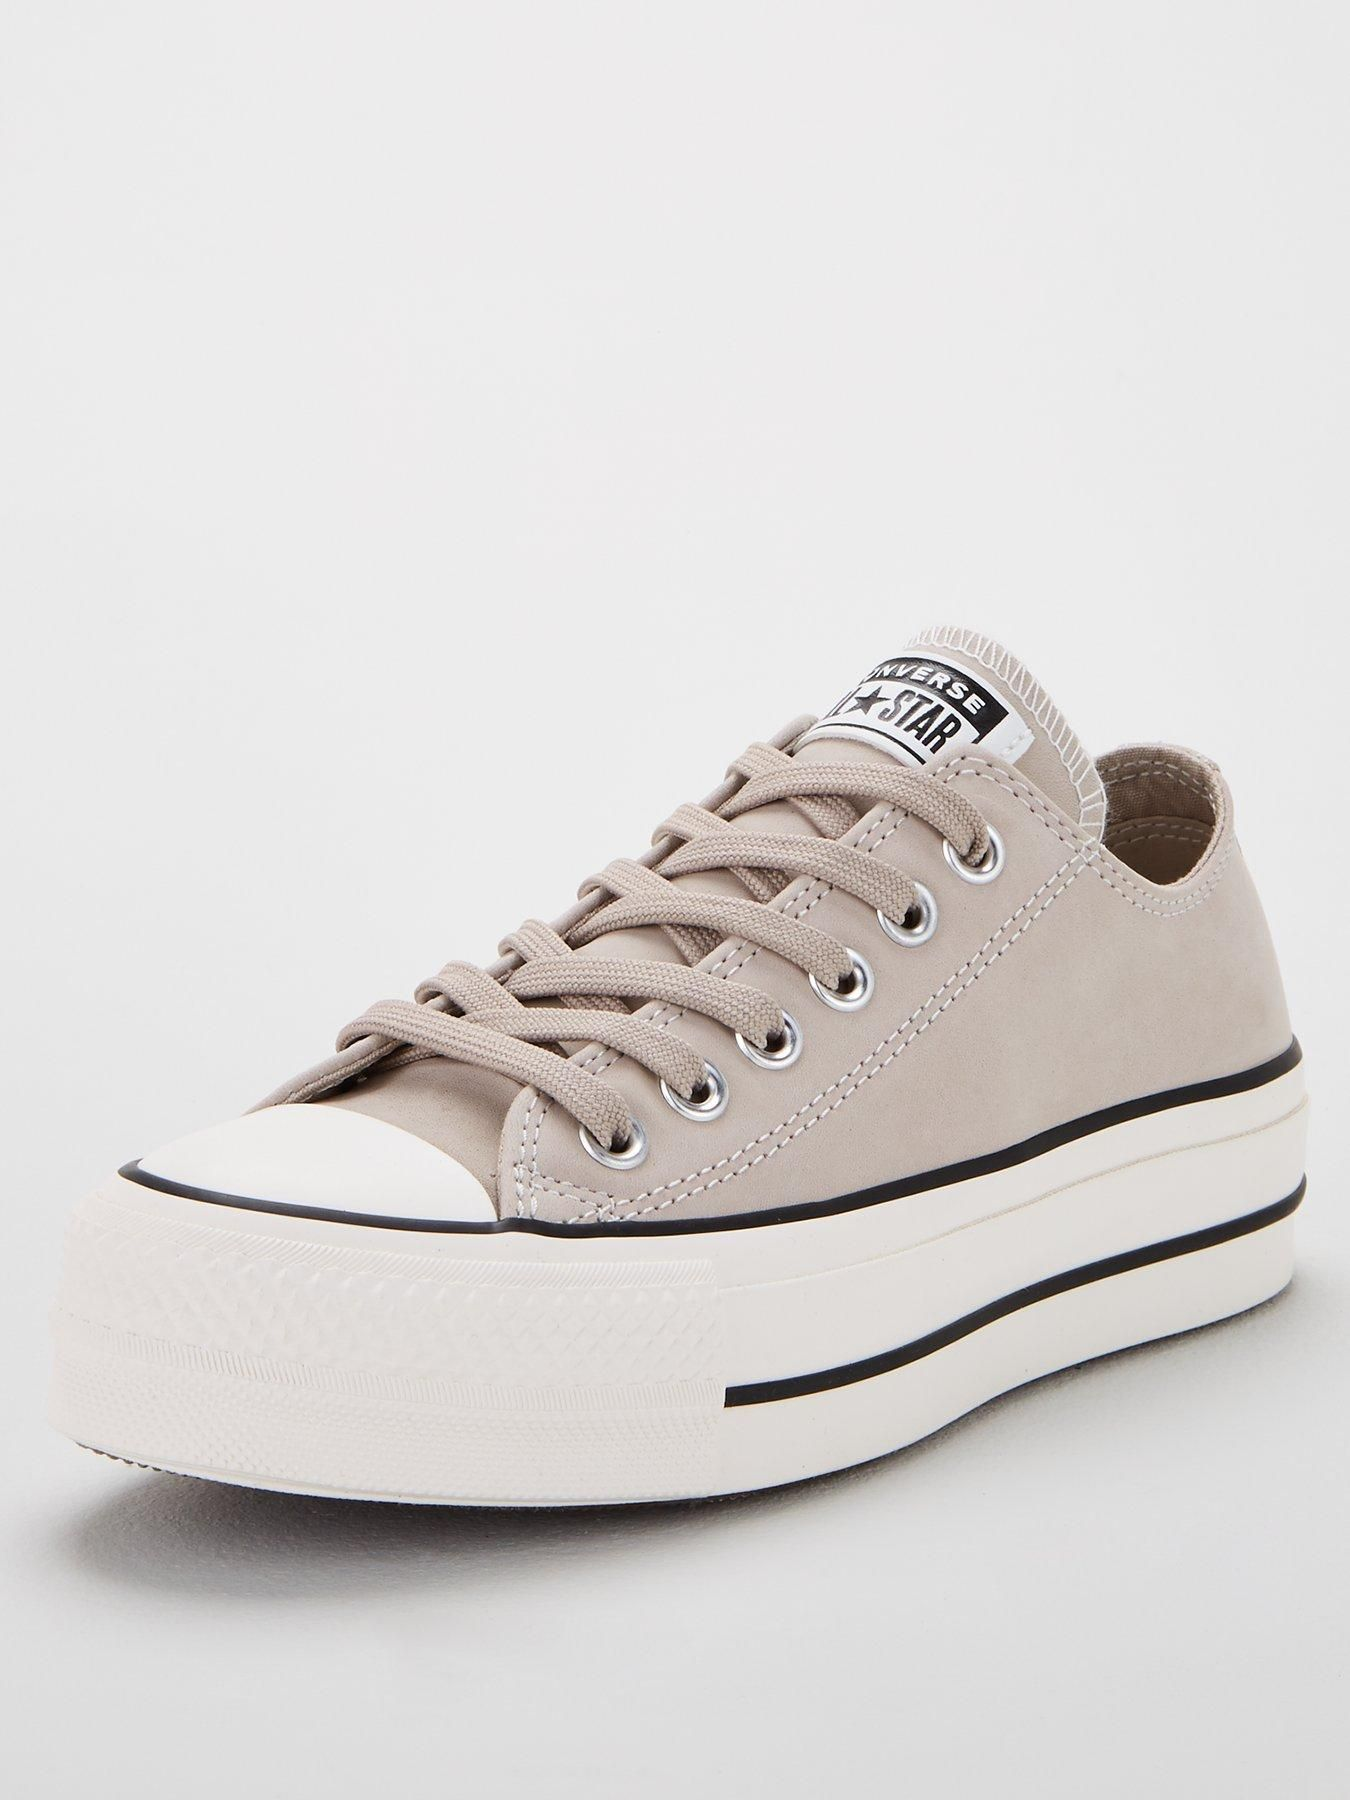 converse all star platform beige